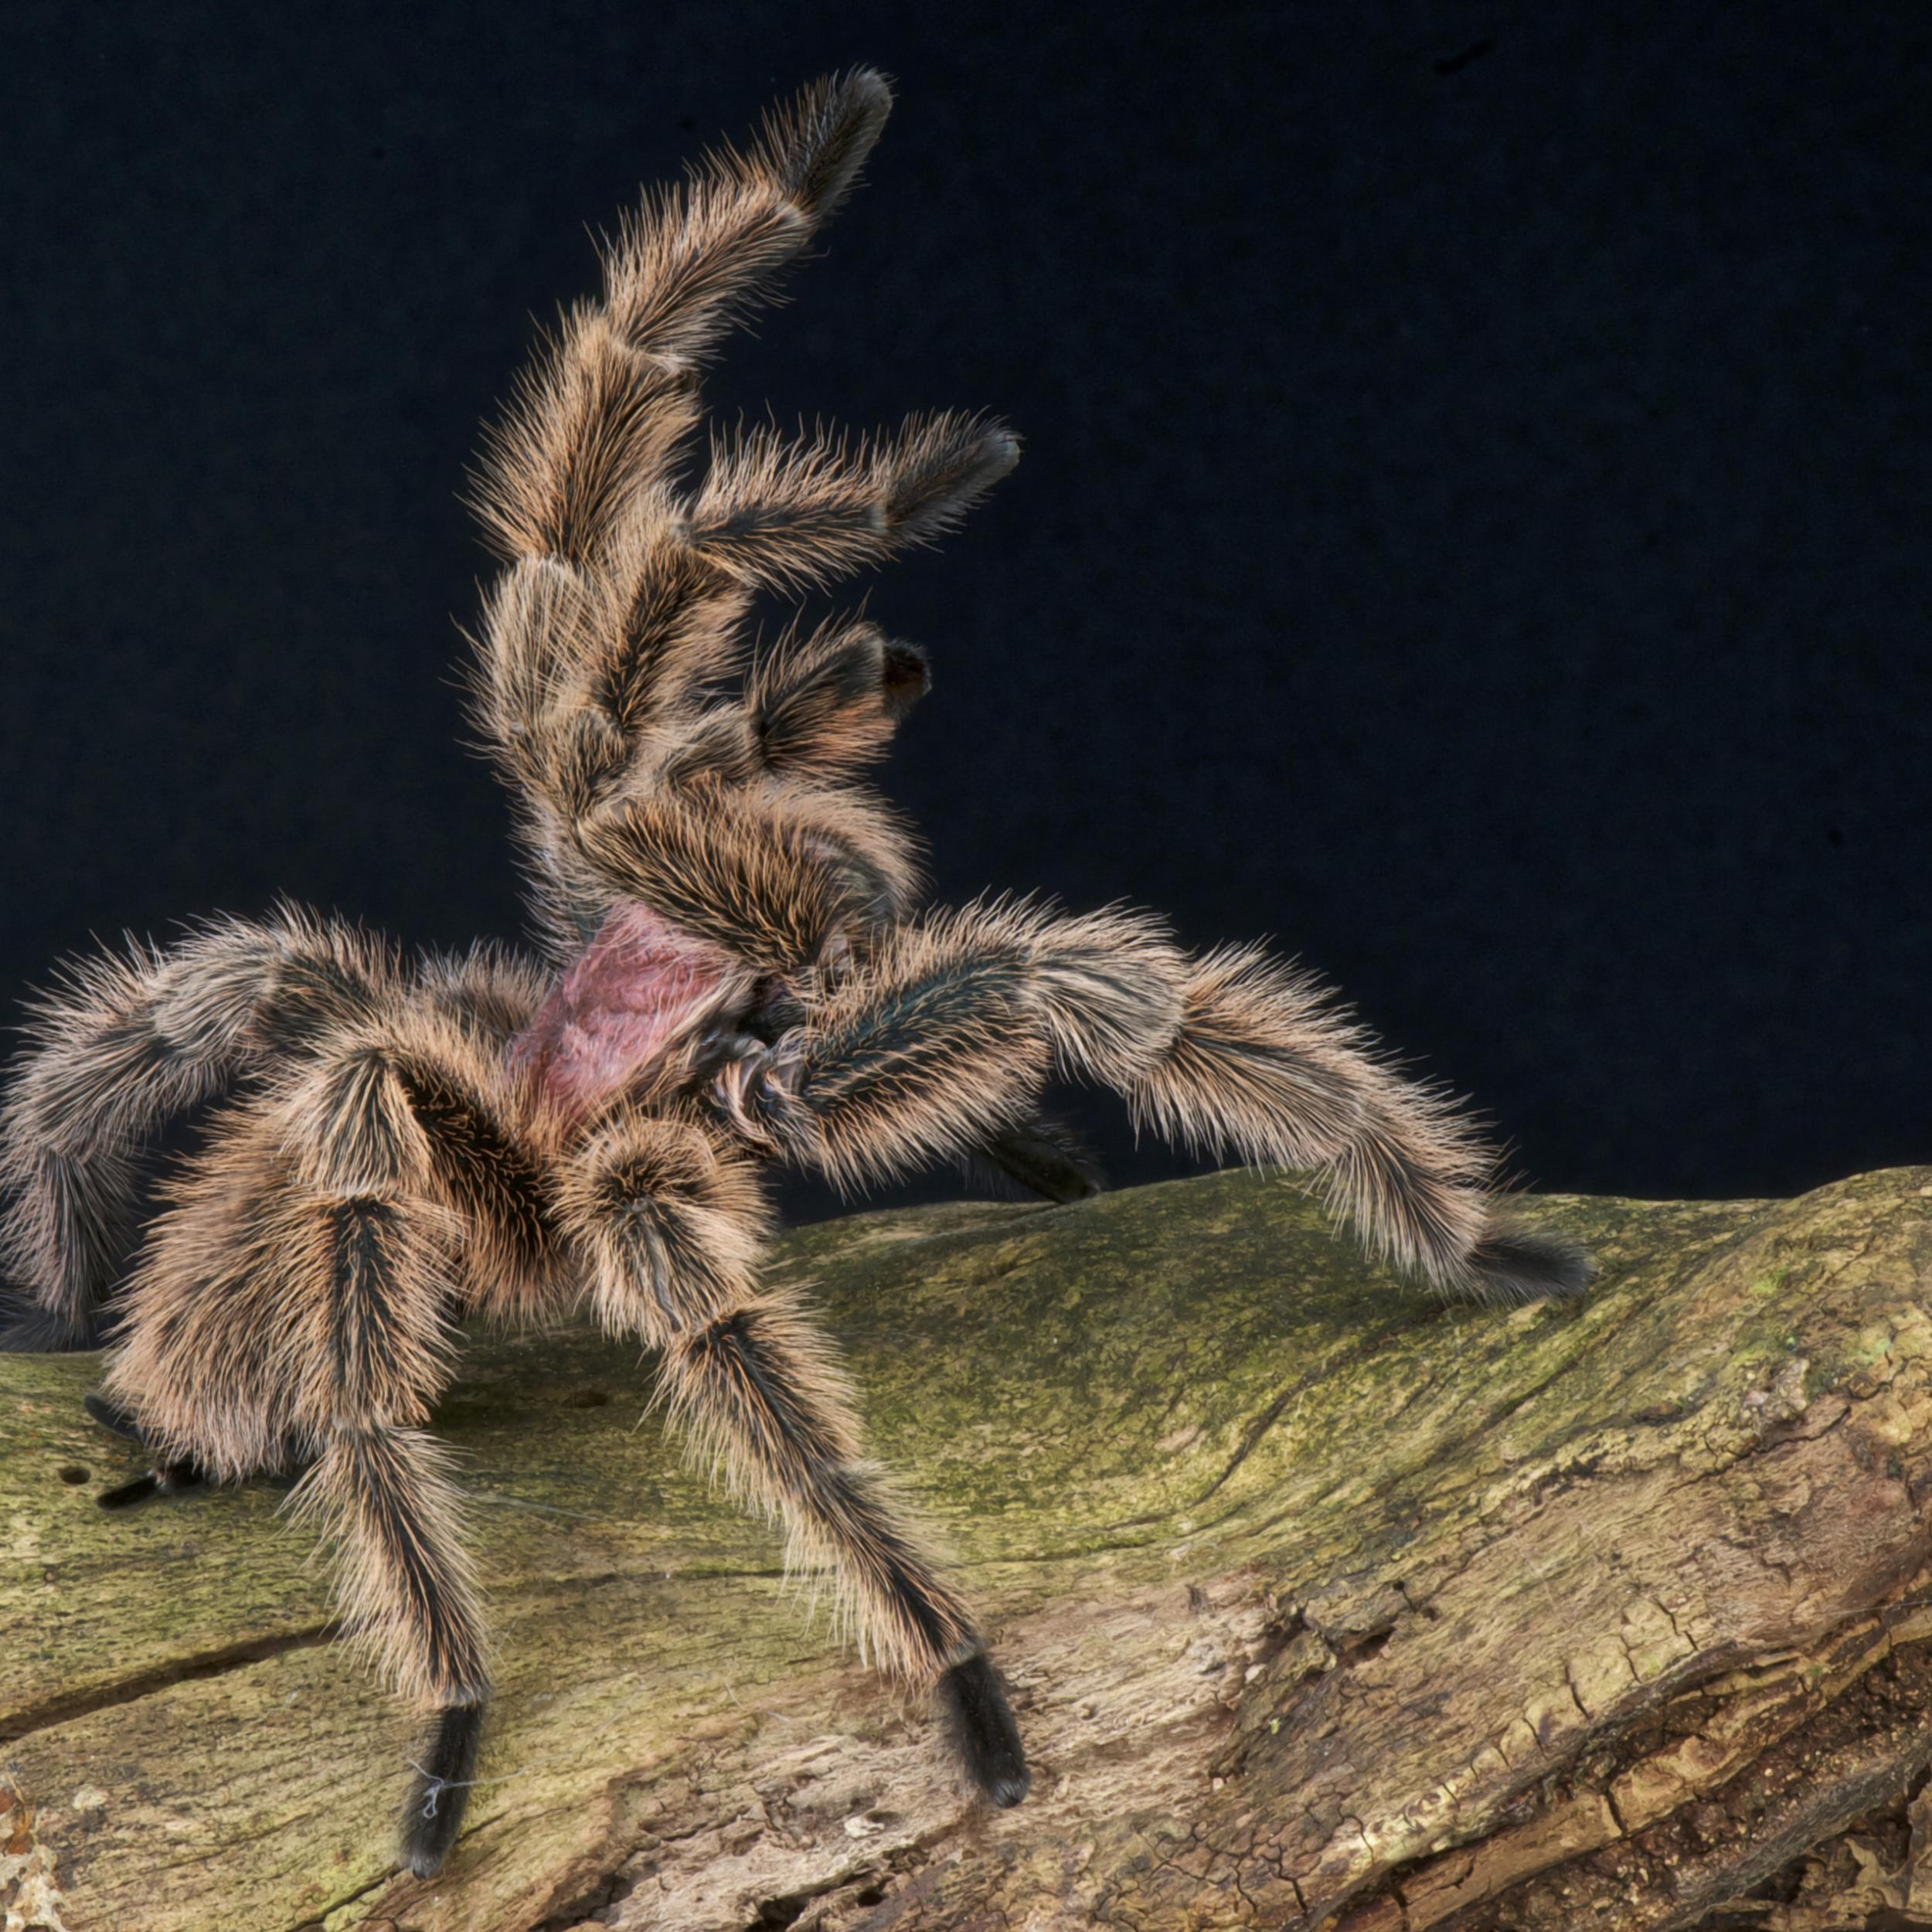 Venom As Medicine: How Spiders, Scorpions, Snakes, And Sea